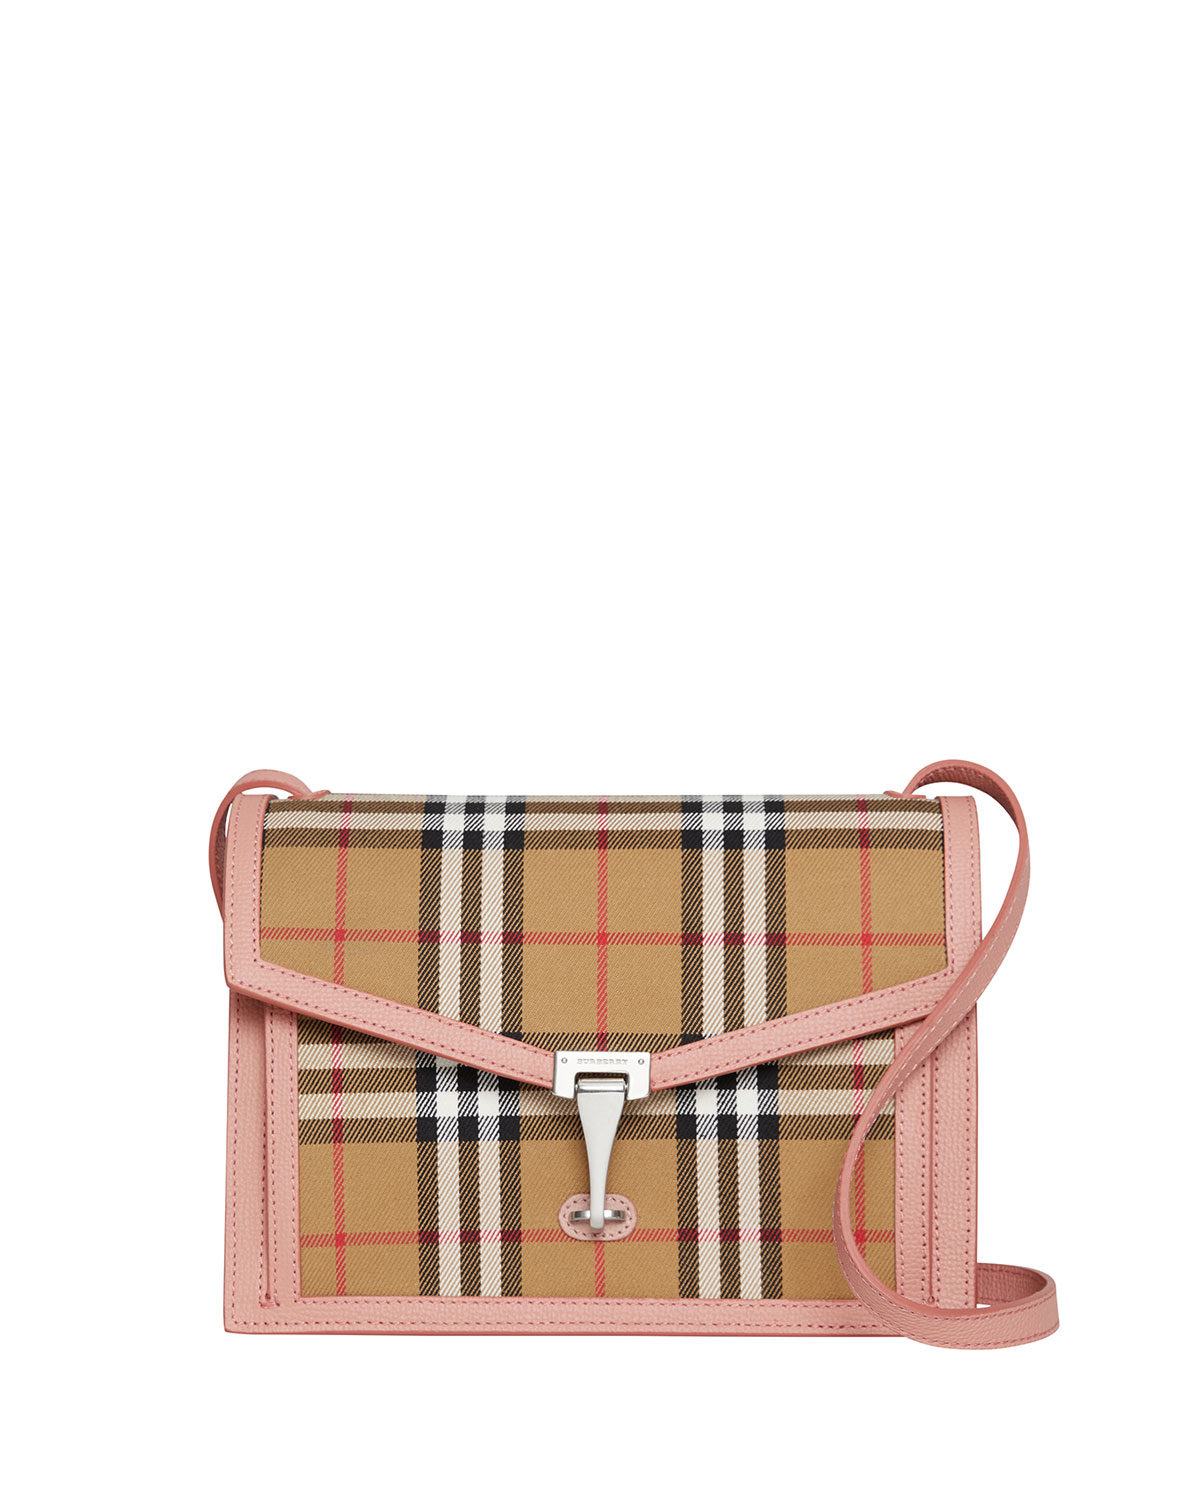 a695a24b1d0 Burberry Macken Small Vintage Check Crossbody Bag